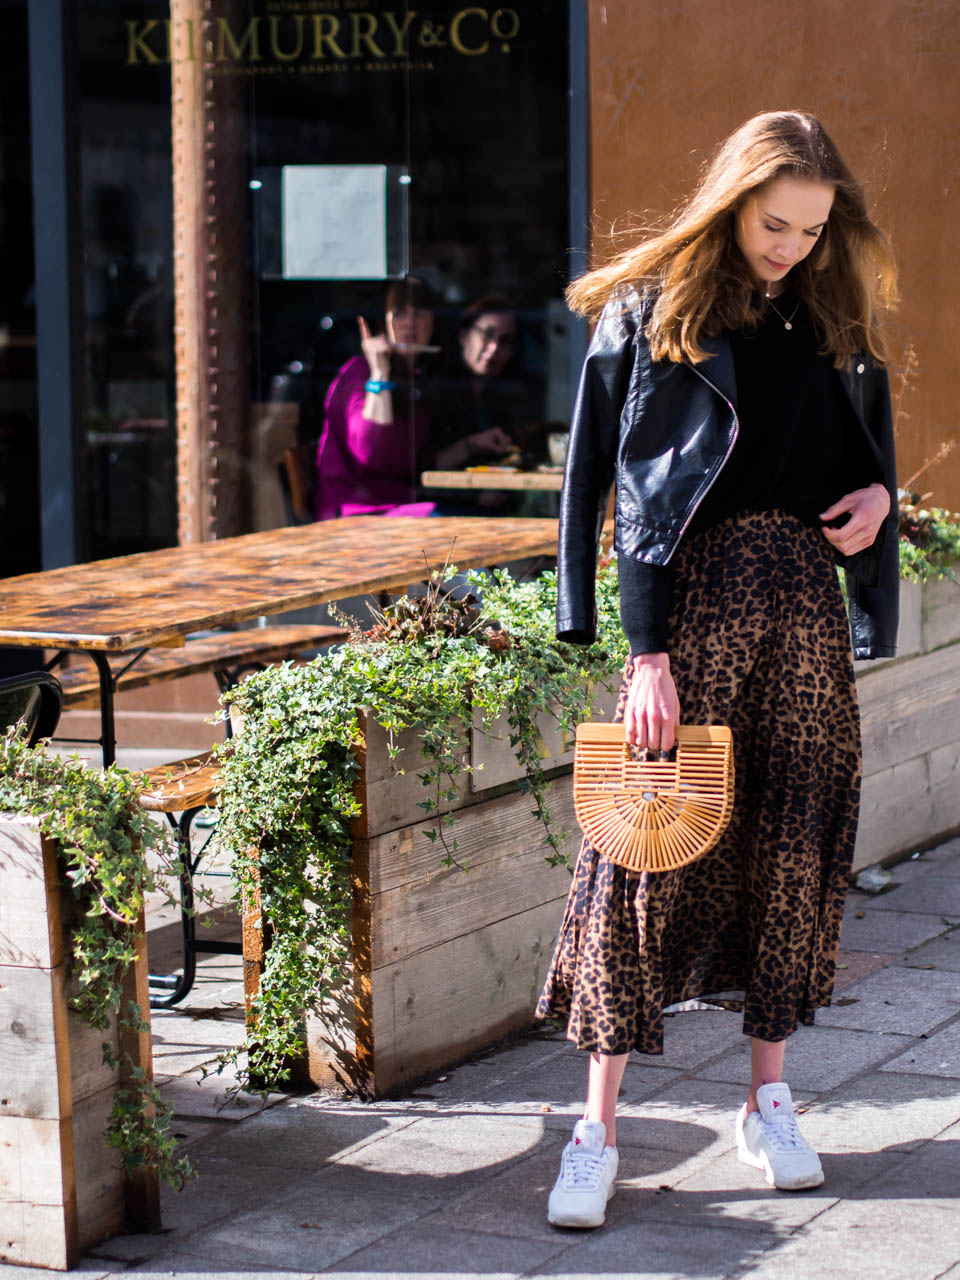 autumn-fashion-trend-leopard-print-midi-skirt-blogger-style